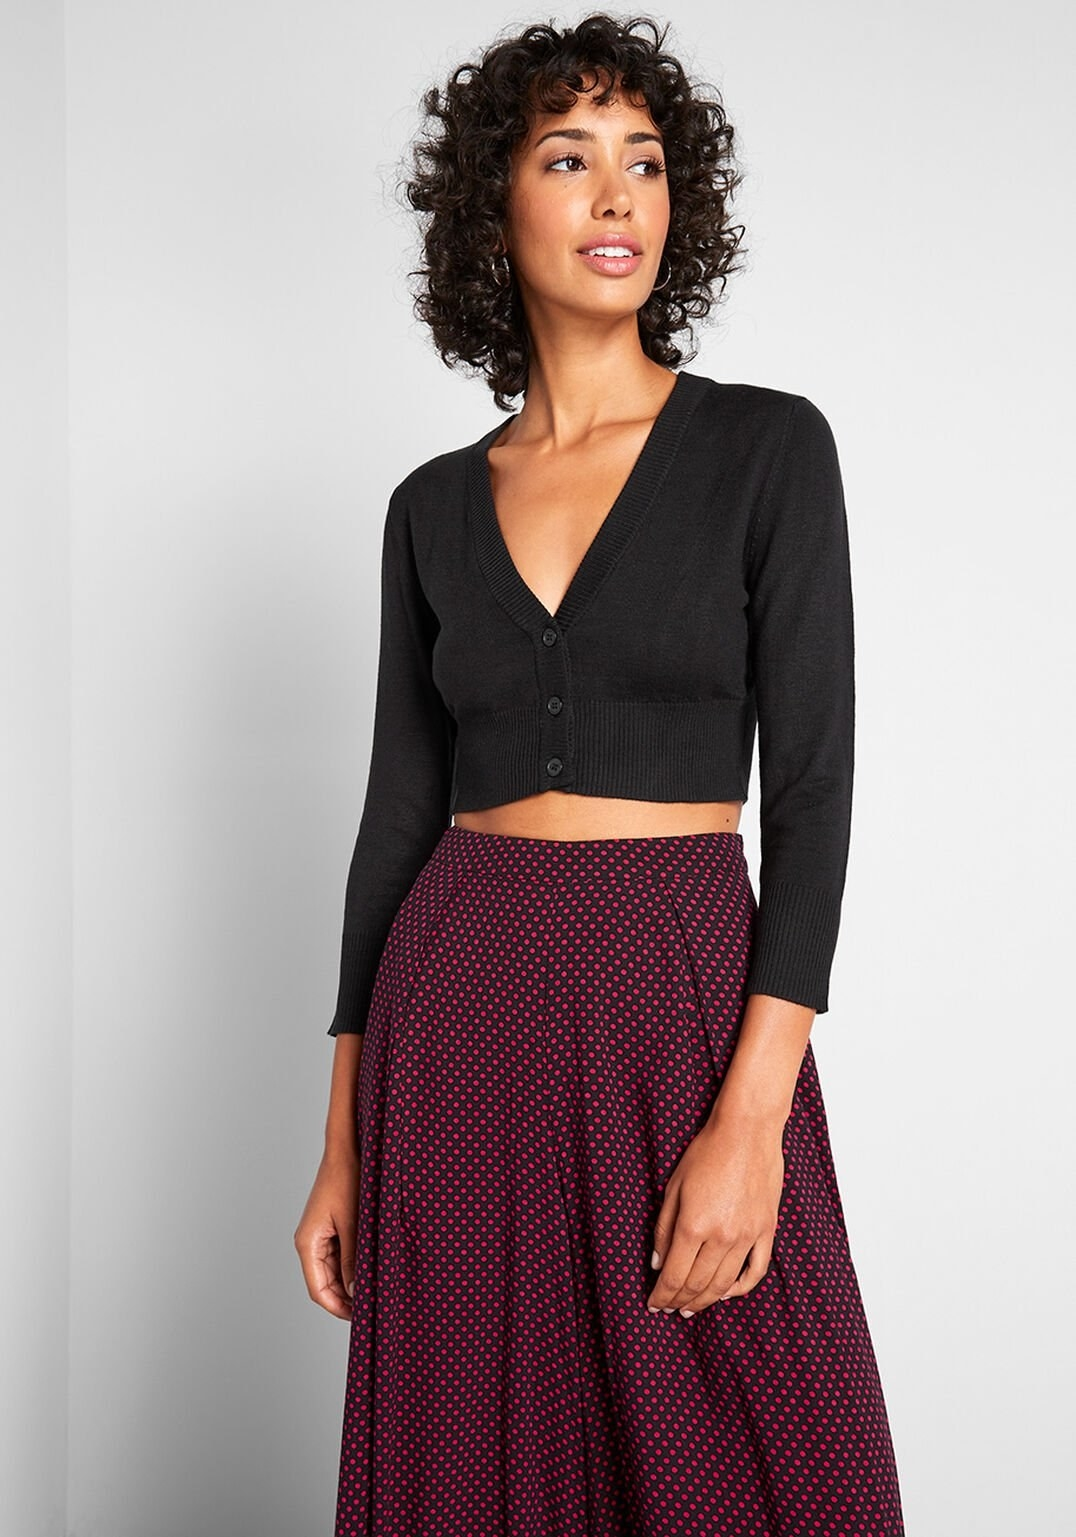 a model wearing the cropped cardigan in black with all three middle buttons closed